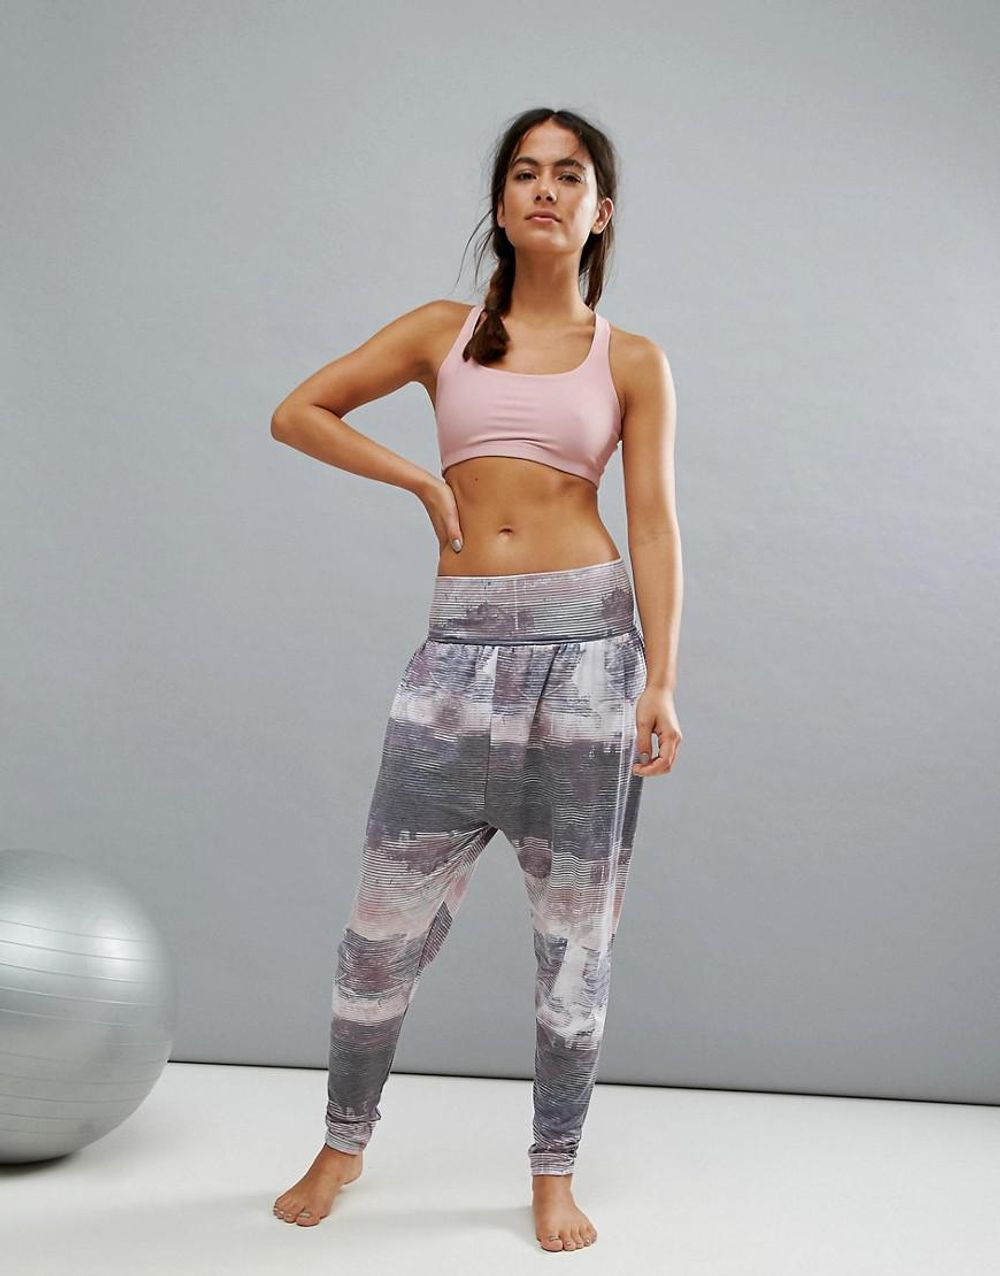 Prints and Accessories Outfit Picks to Wear for Your Yoga Class